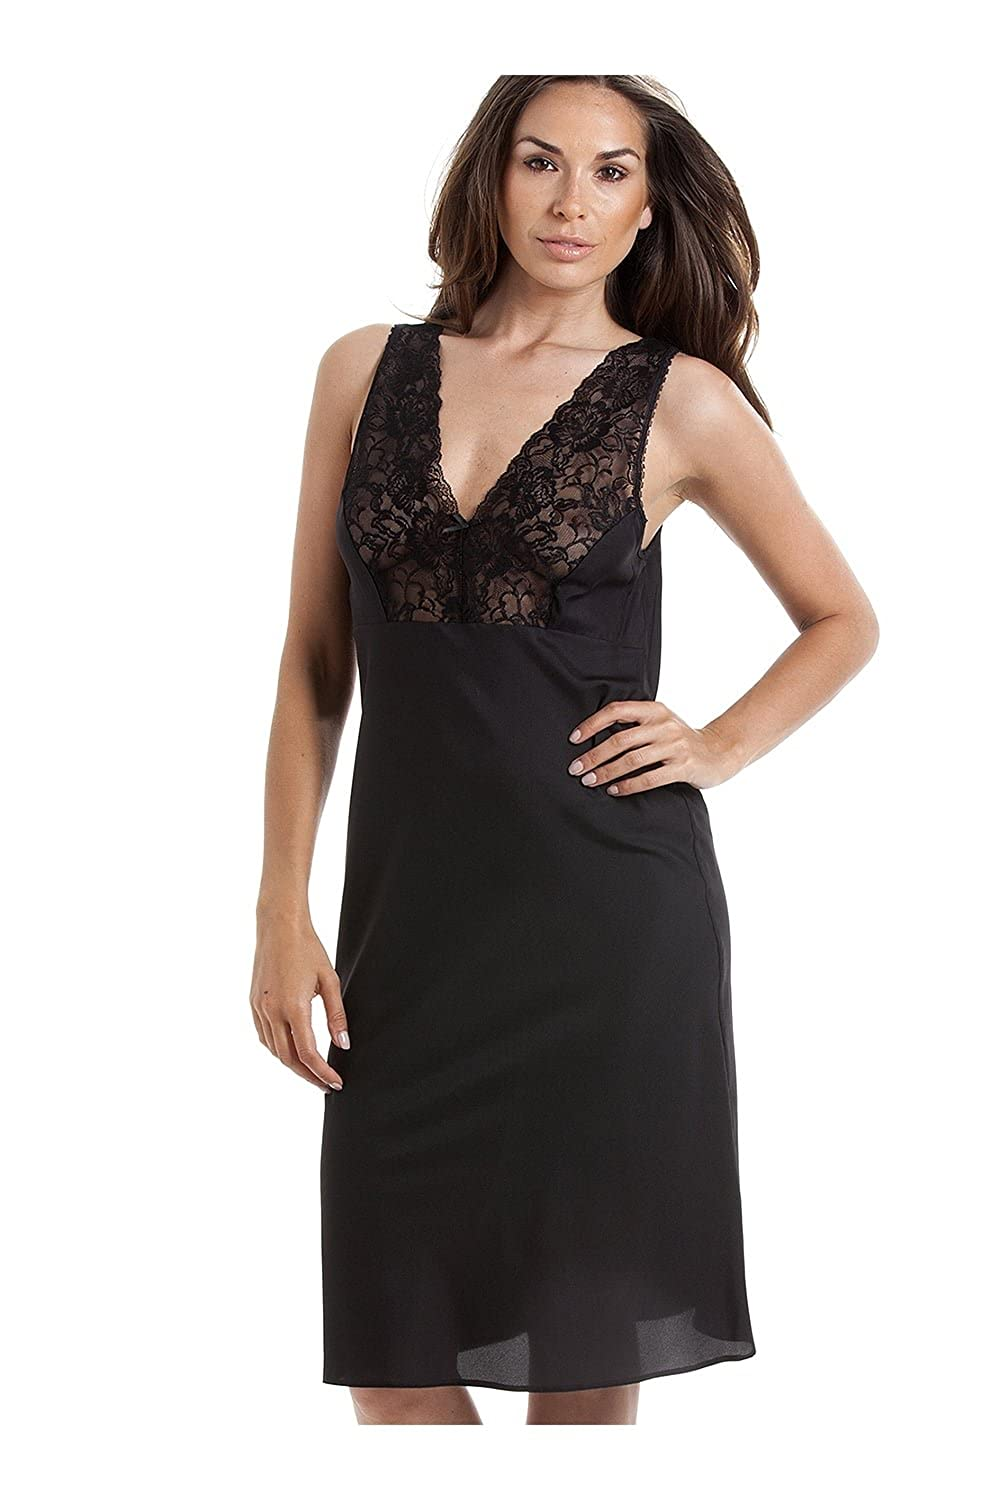 Camille Womens Ladies Classic Black Chemise Full Slip